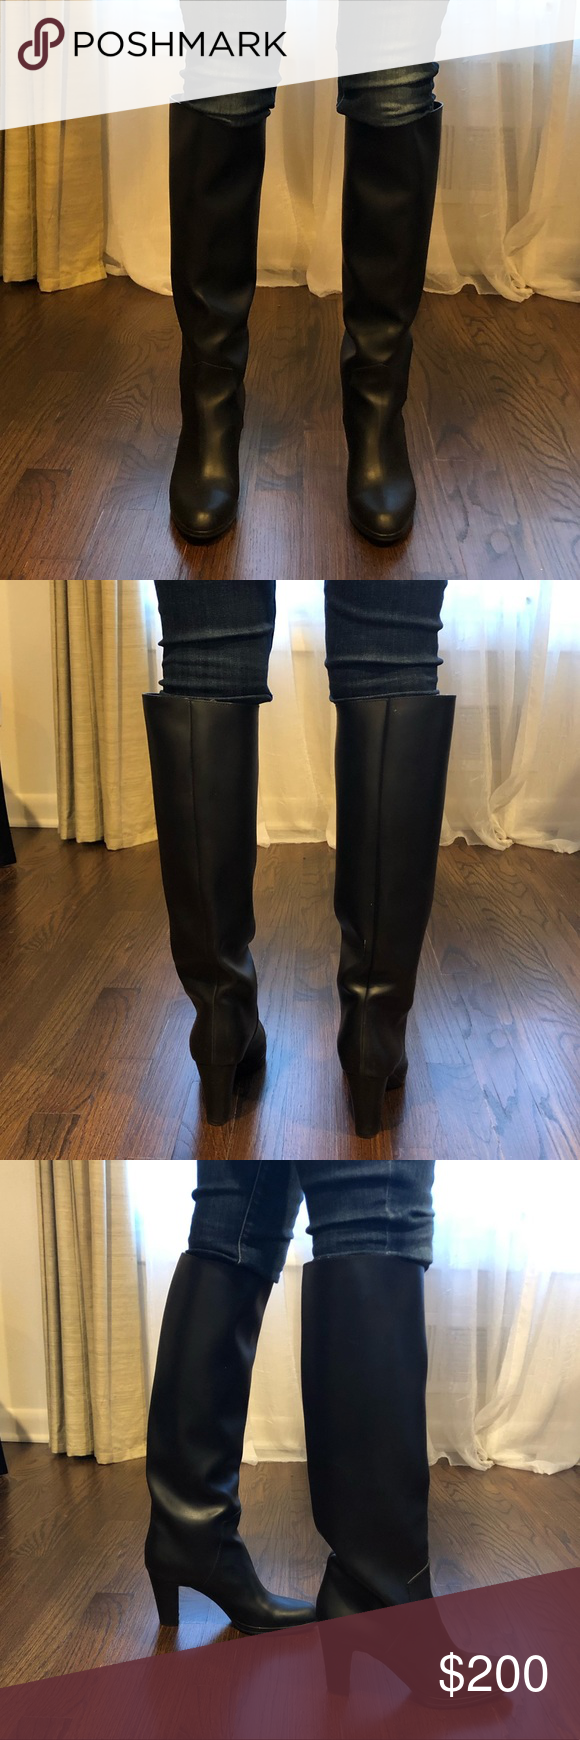 NEW Sergio Rossi Tall Rubber Boots Size 37.5 Brand new Sergio Rossi black rubber boots with heel. Pe...